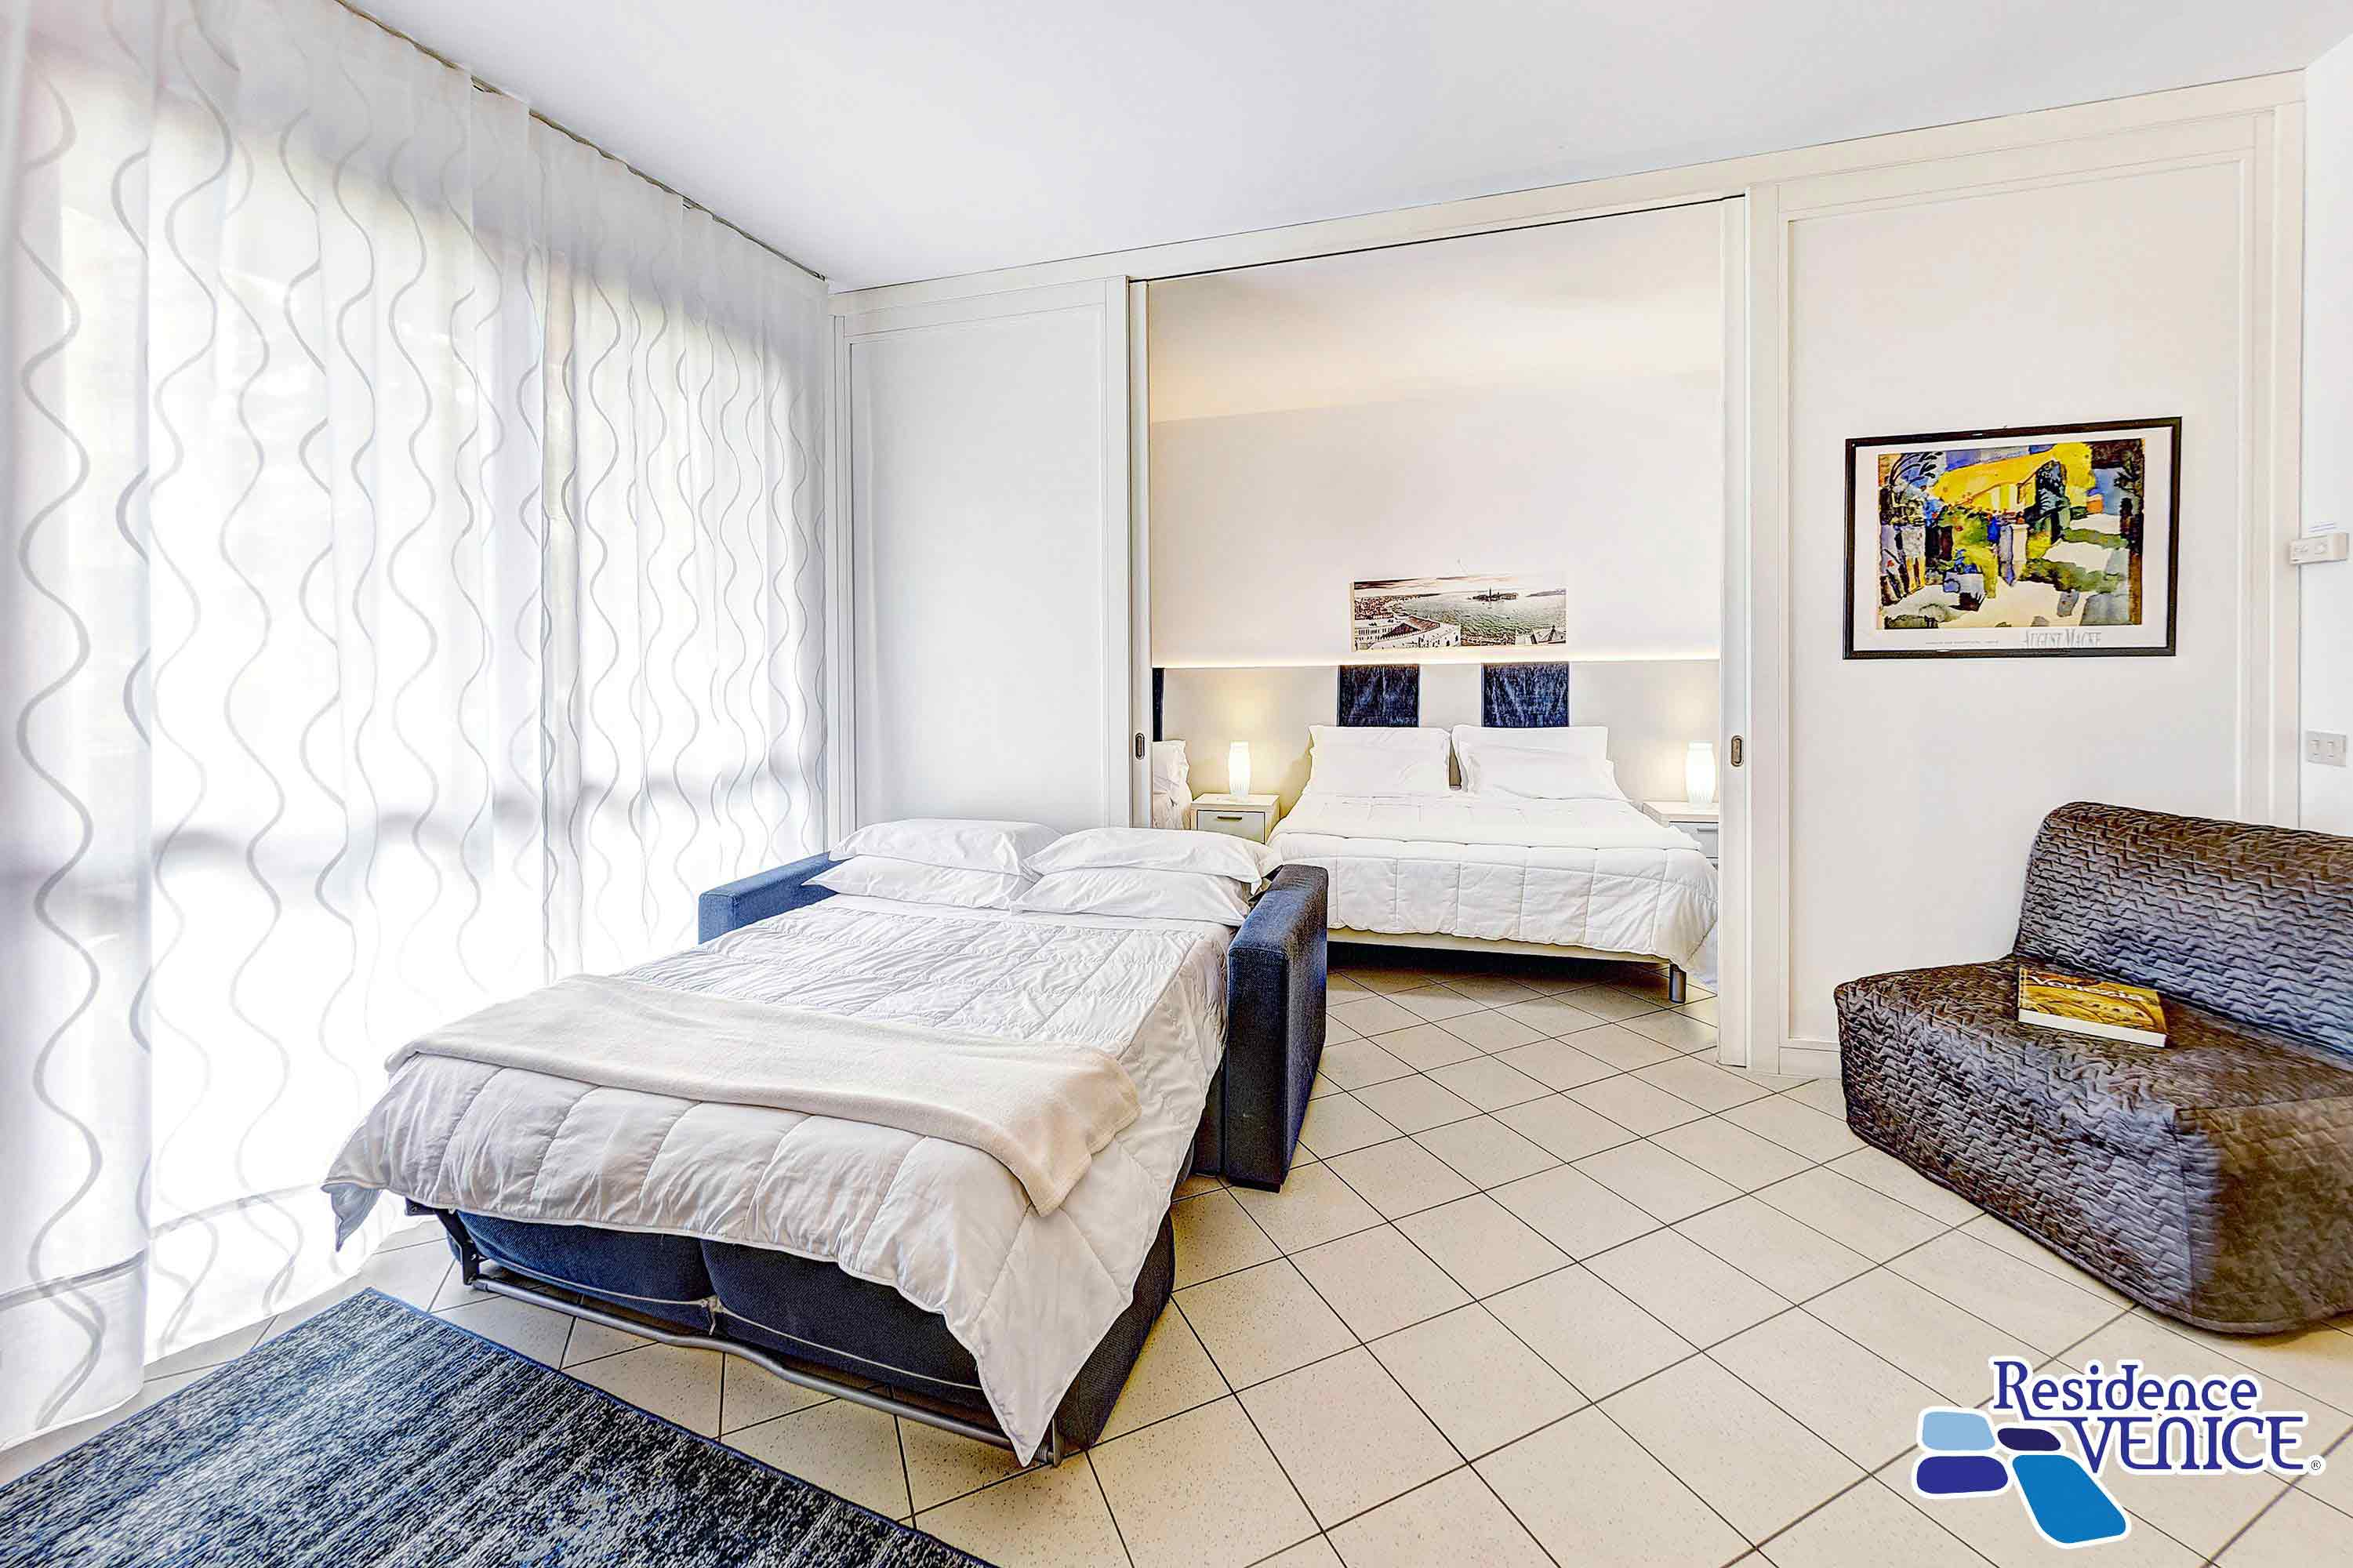 Residence Venice Luxury Family Apartment 2